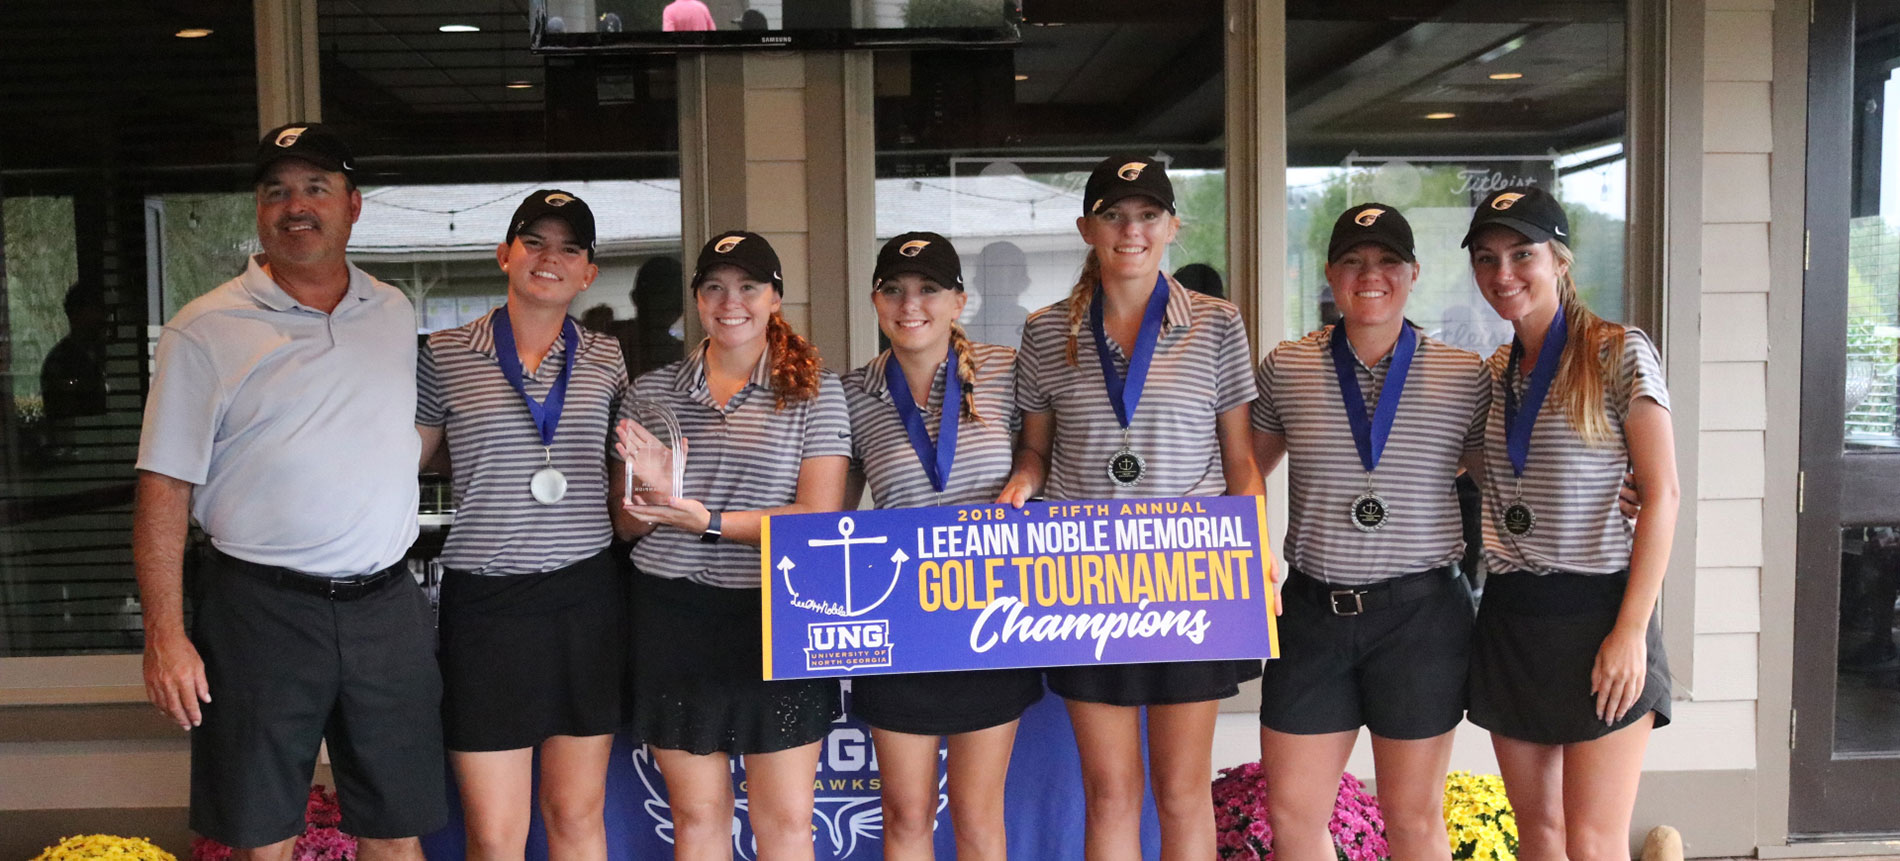 Women's Golf Wins LeeAnn Noble Memorial